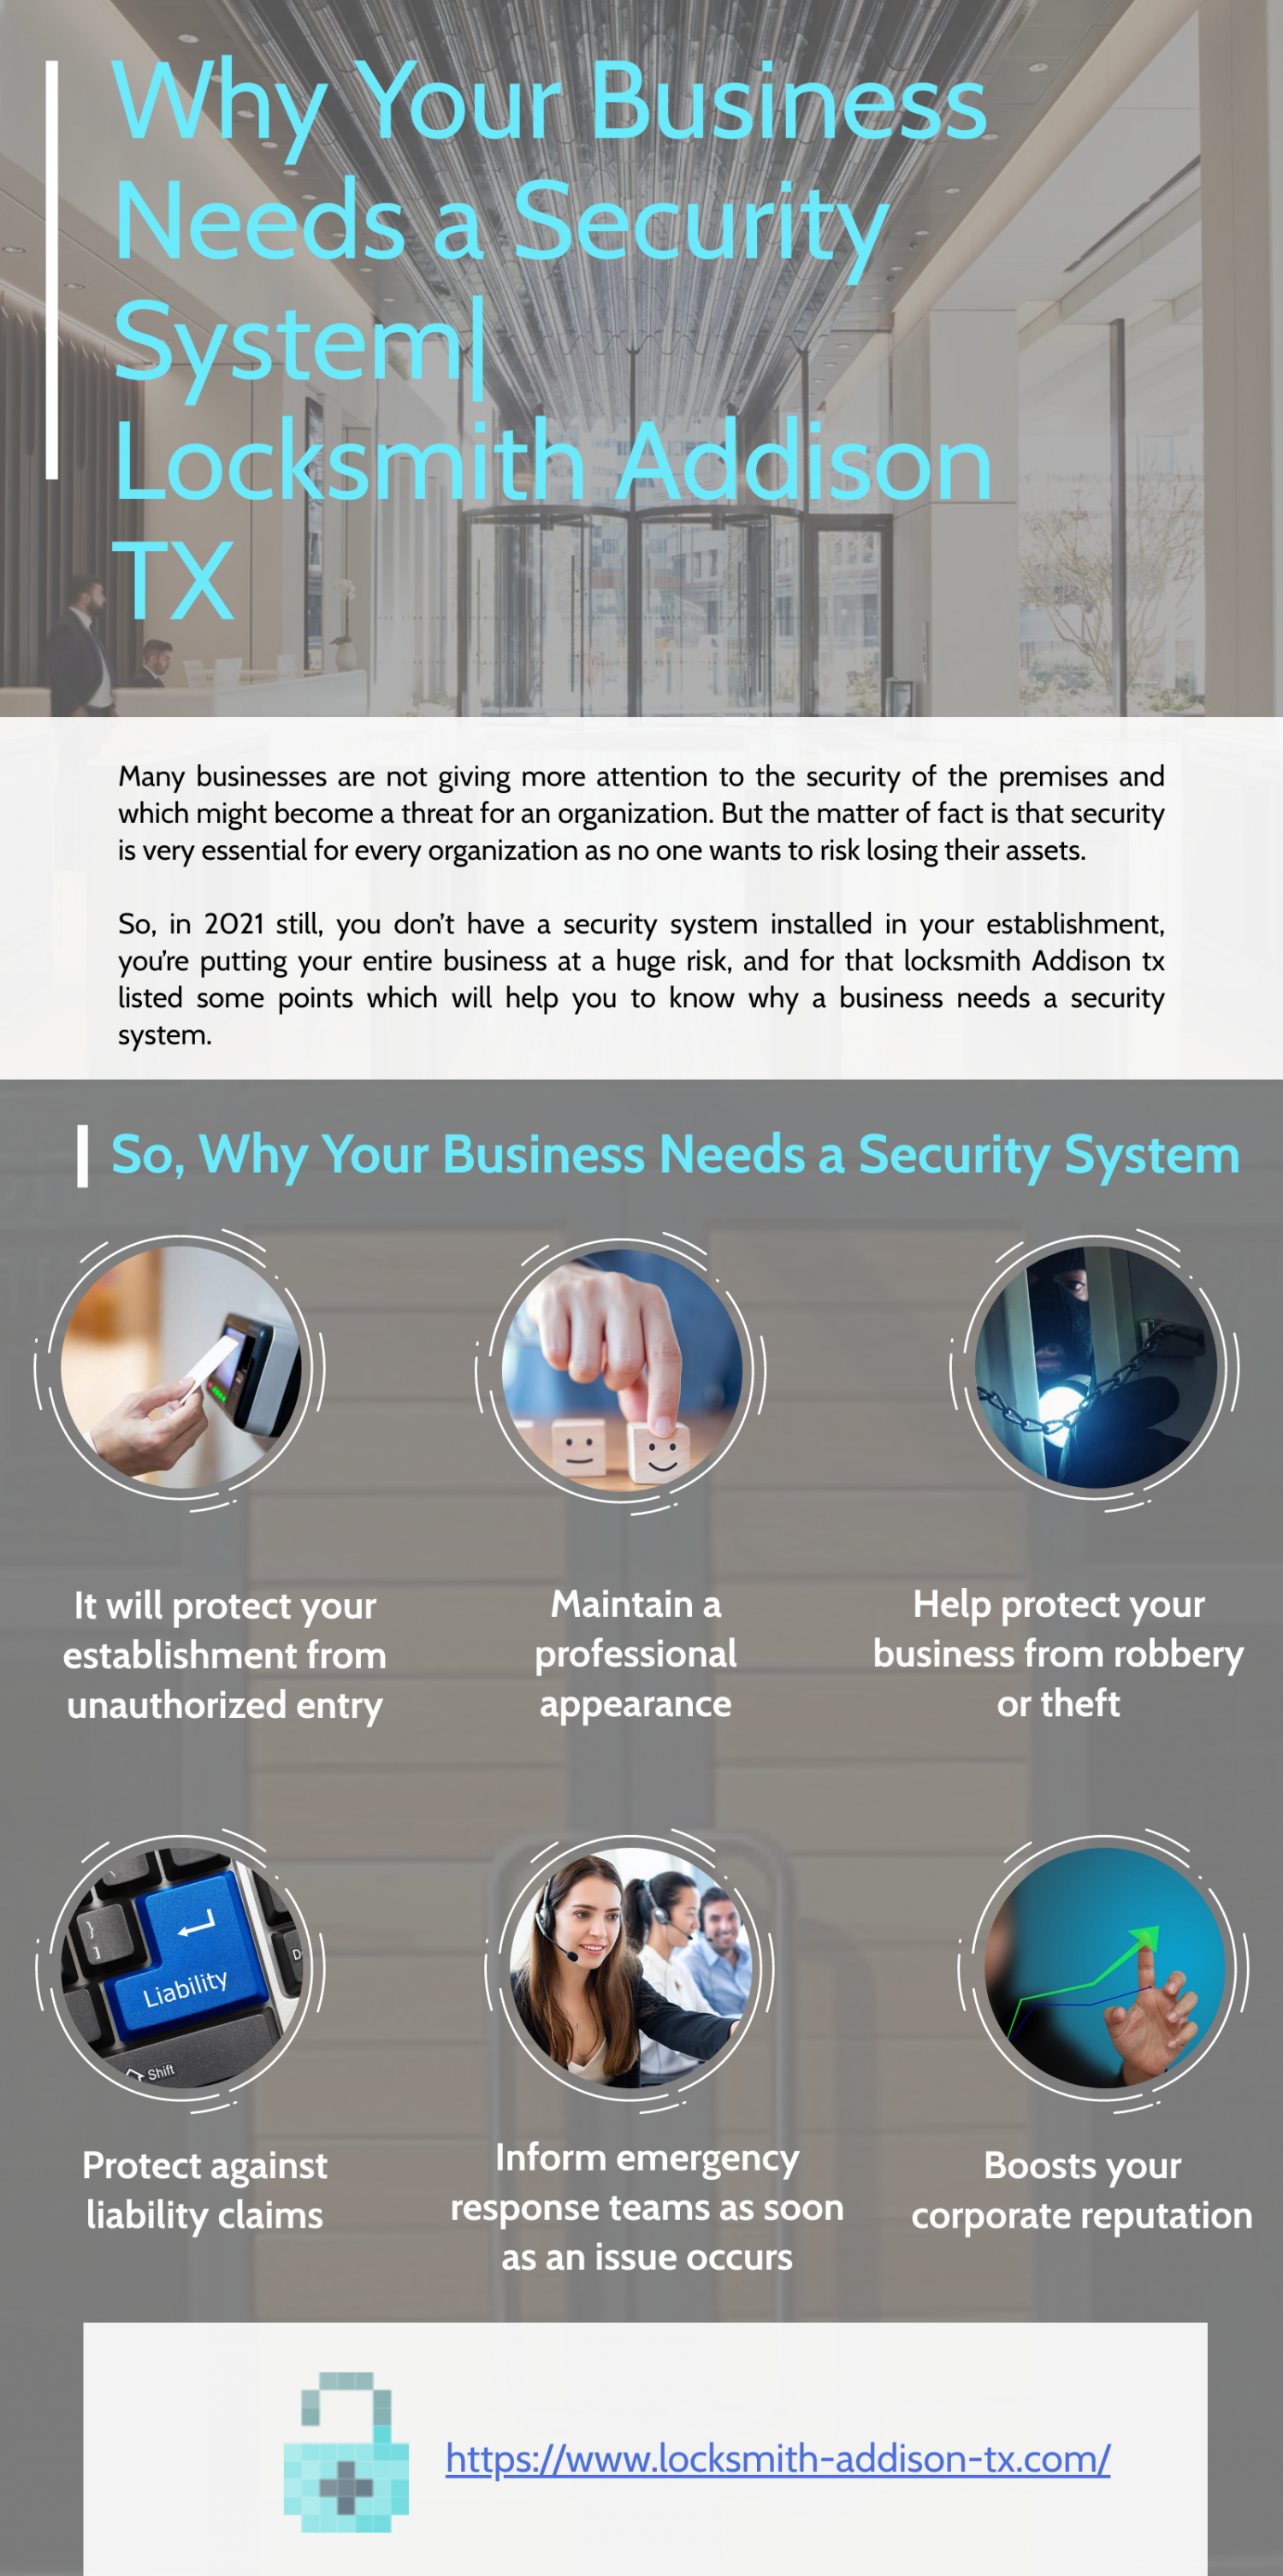 Locksmith Addison TX_Why Your Business Needs a Security System Infographic